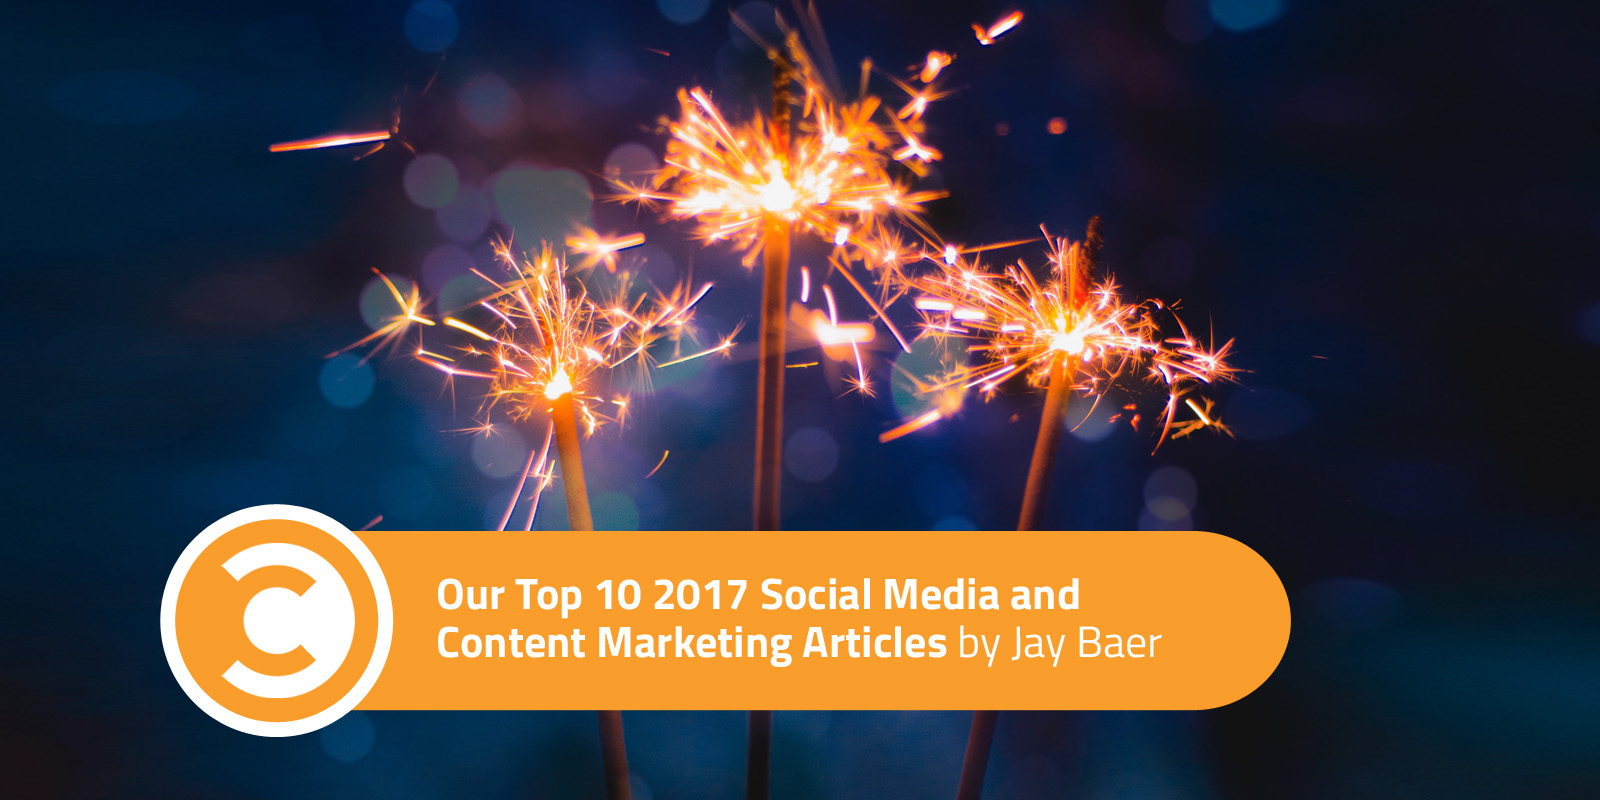 Our Top 10 2017 Social Media and Content Marketing Articles